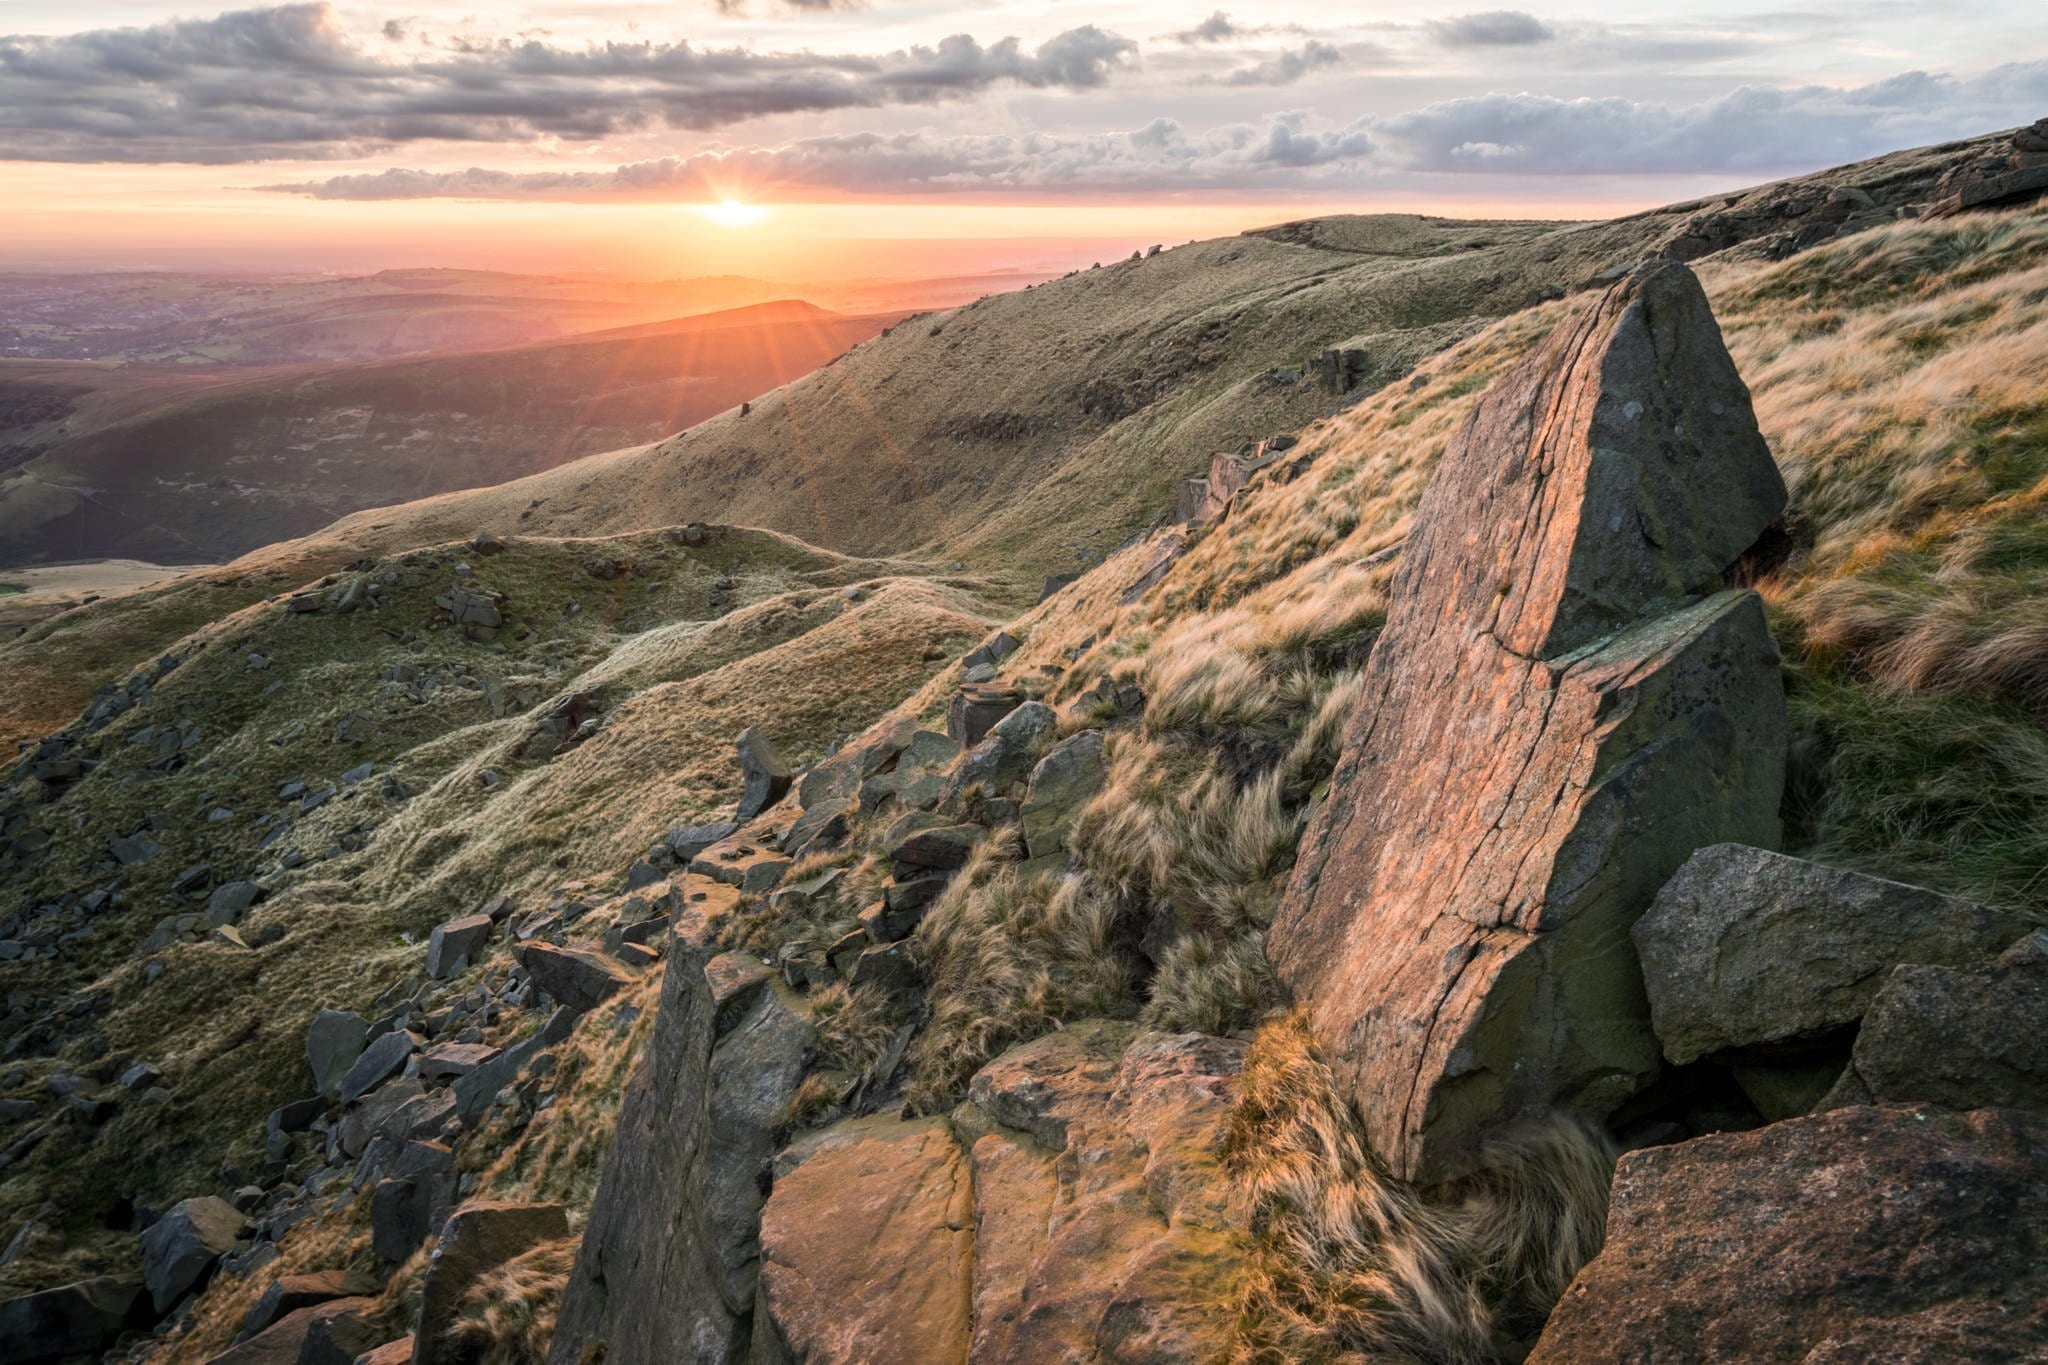 Sandy Heys Autumn Equinox Sunset - Kinder Scout Sunrise to Sunset Workshop